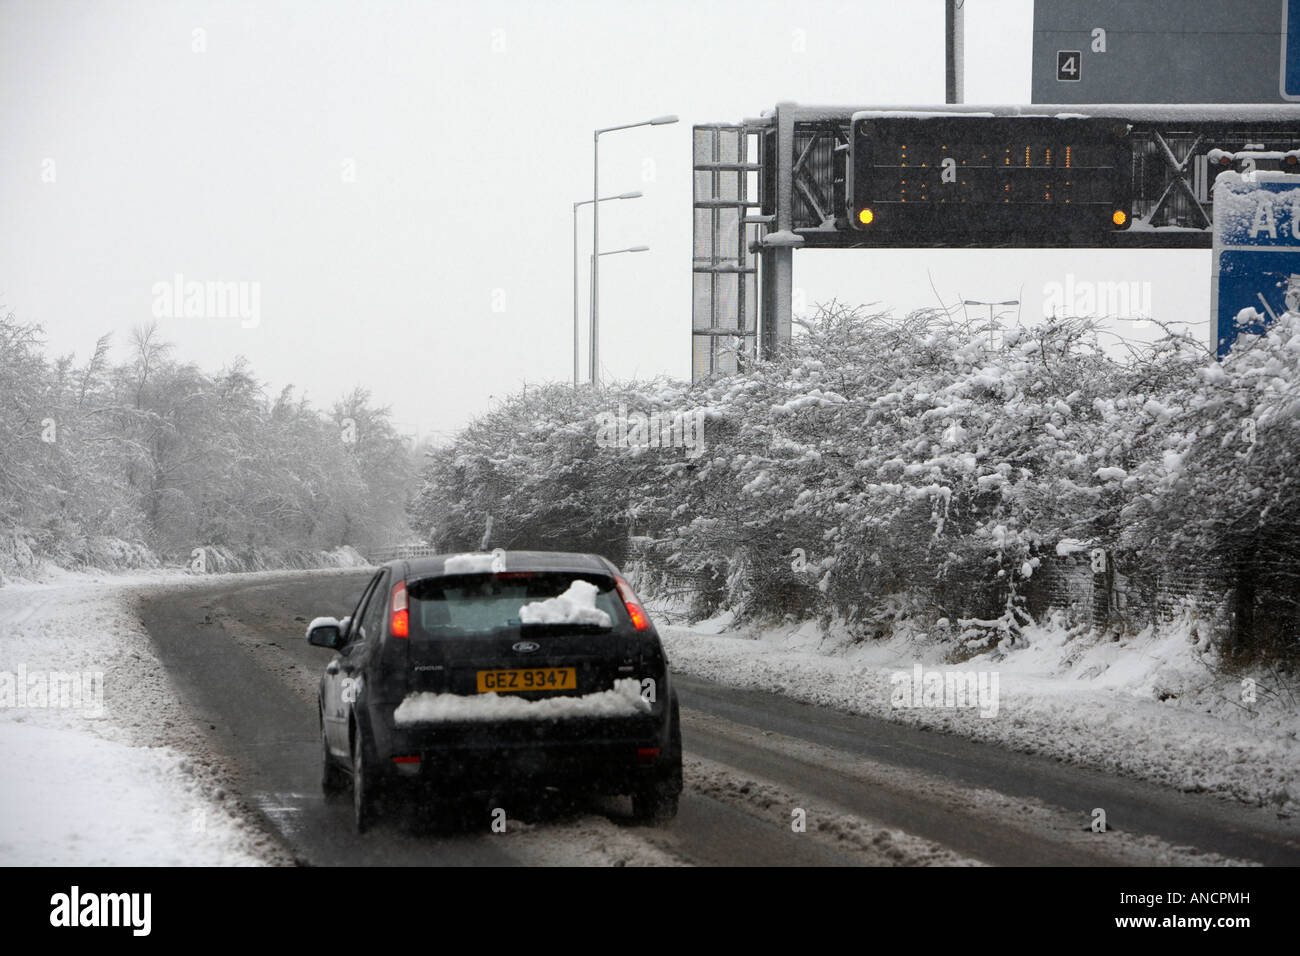 ford focus car driving along treated road next to motorway warning sign - Stock Image